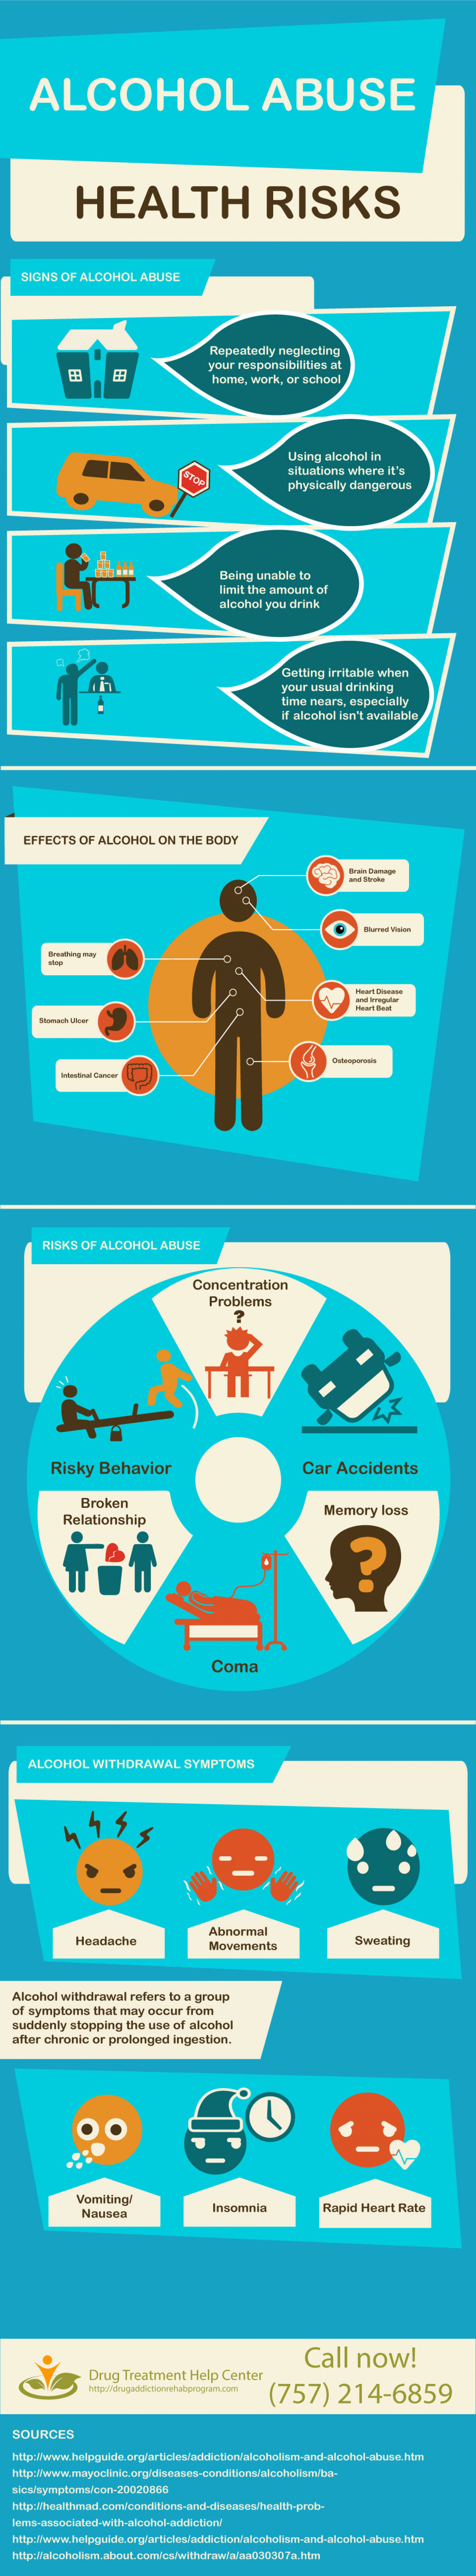 the risks associated with alcohol use and Home alcohol addiction long-term health risks associated alcoholism is one of the leading lifestyle-related causes of disease and death in the united states according to statistics from the university of california at san francisco , alcohol abuse is responsible for 1,400 disease-related deaths, 17,000 motor vehicle fatalities and 500,000.